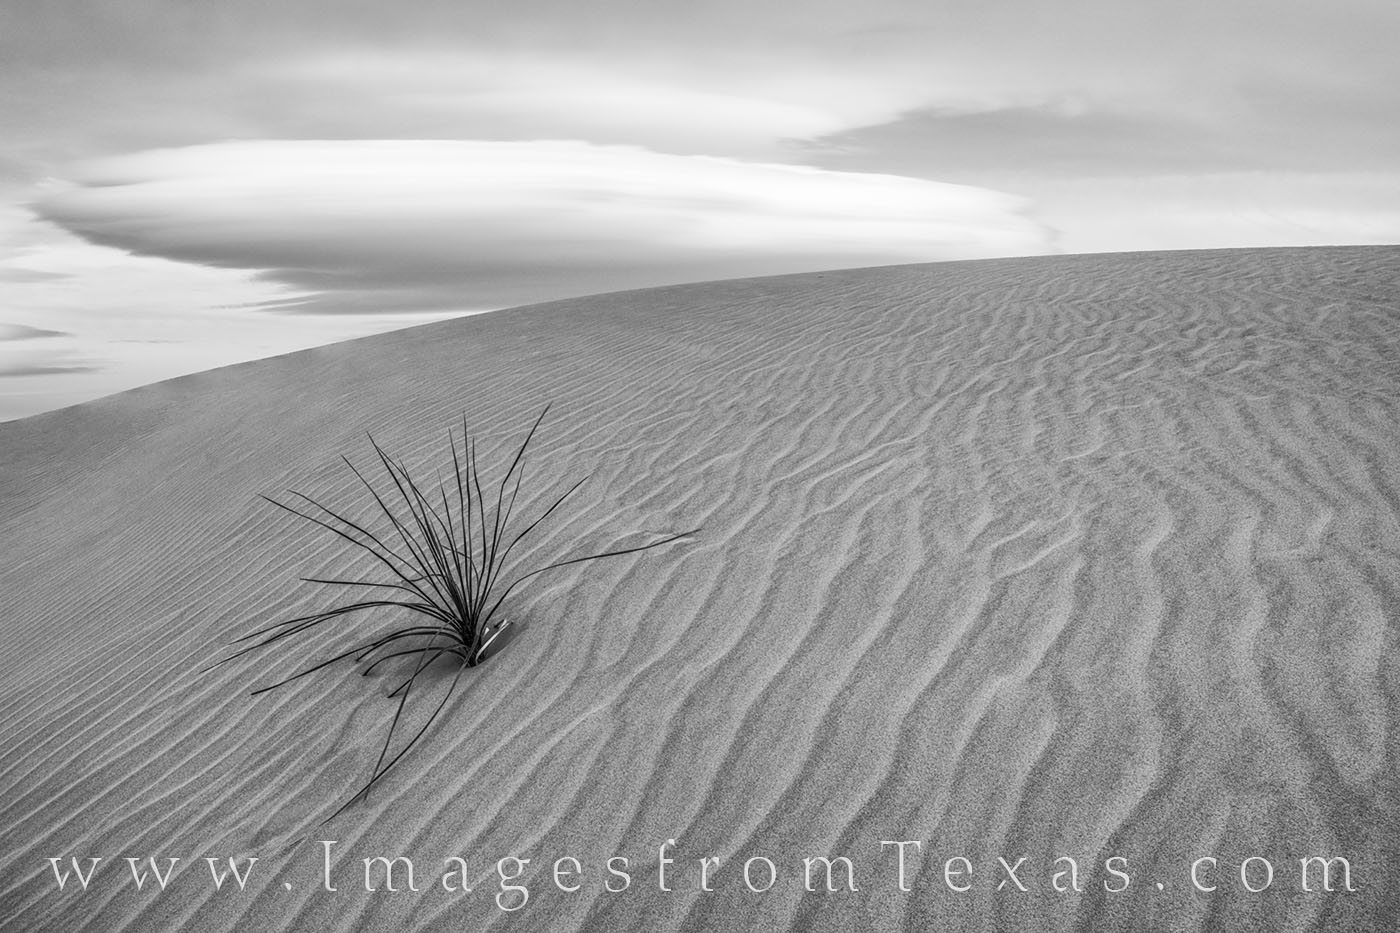 salt basin, sand dunes, texas dunes, guadalupe mountains, sand, west texas, national park, lenticular clouds, yucca, photo